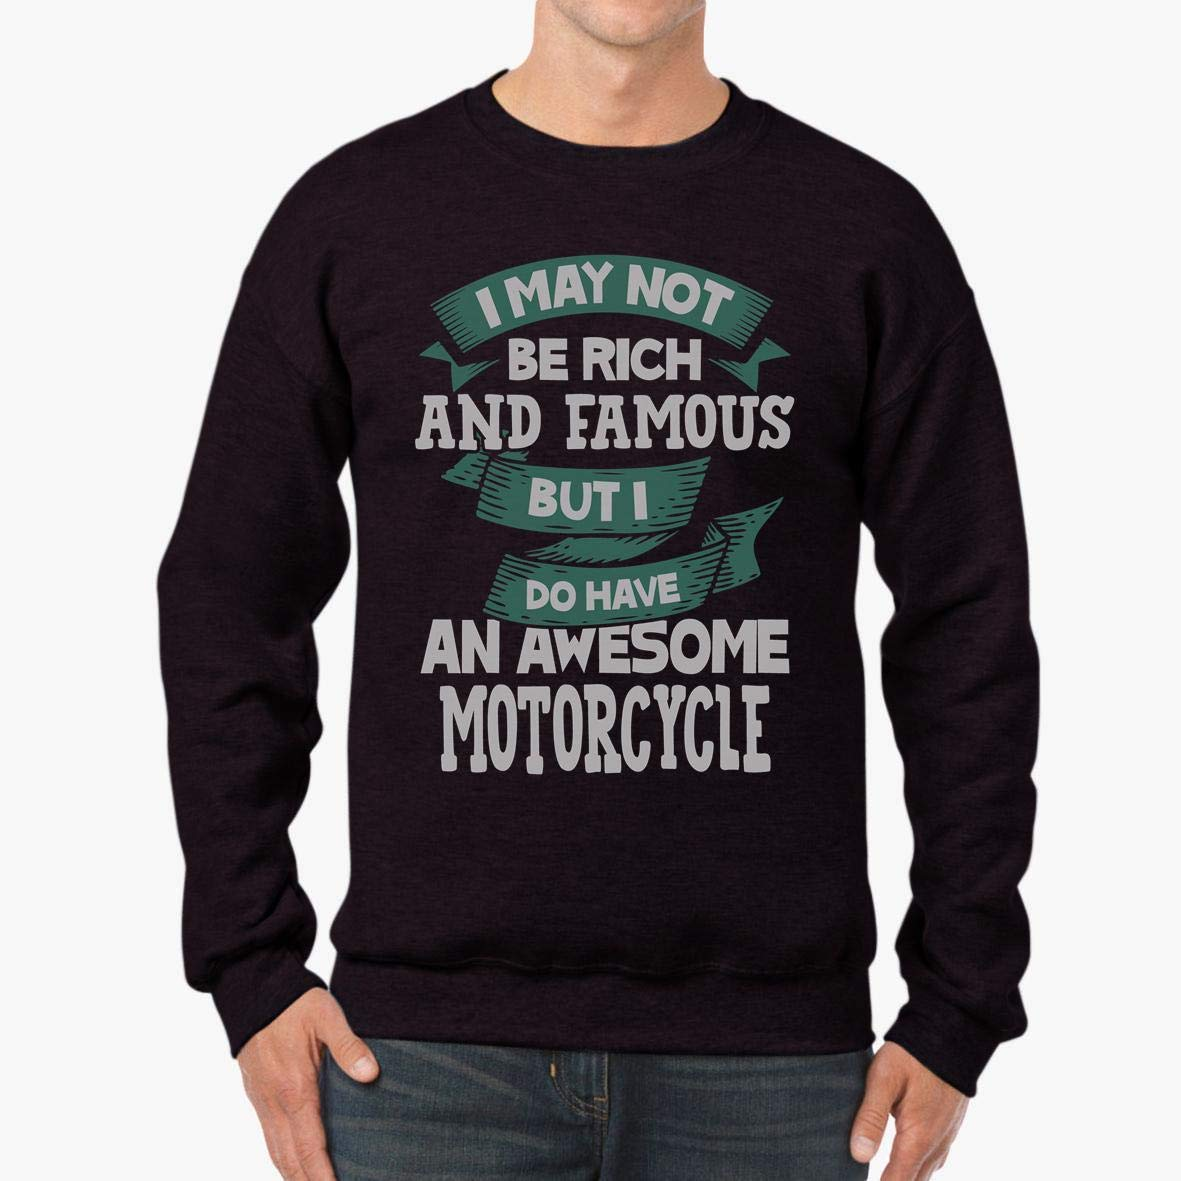 tee I May Not Be Rich and Famous But I Do Have an Awesome Motorcycle Unisex Sweatshirt